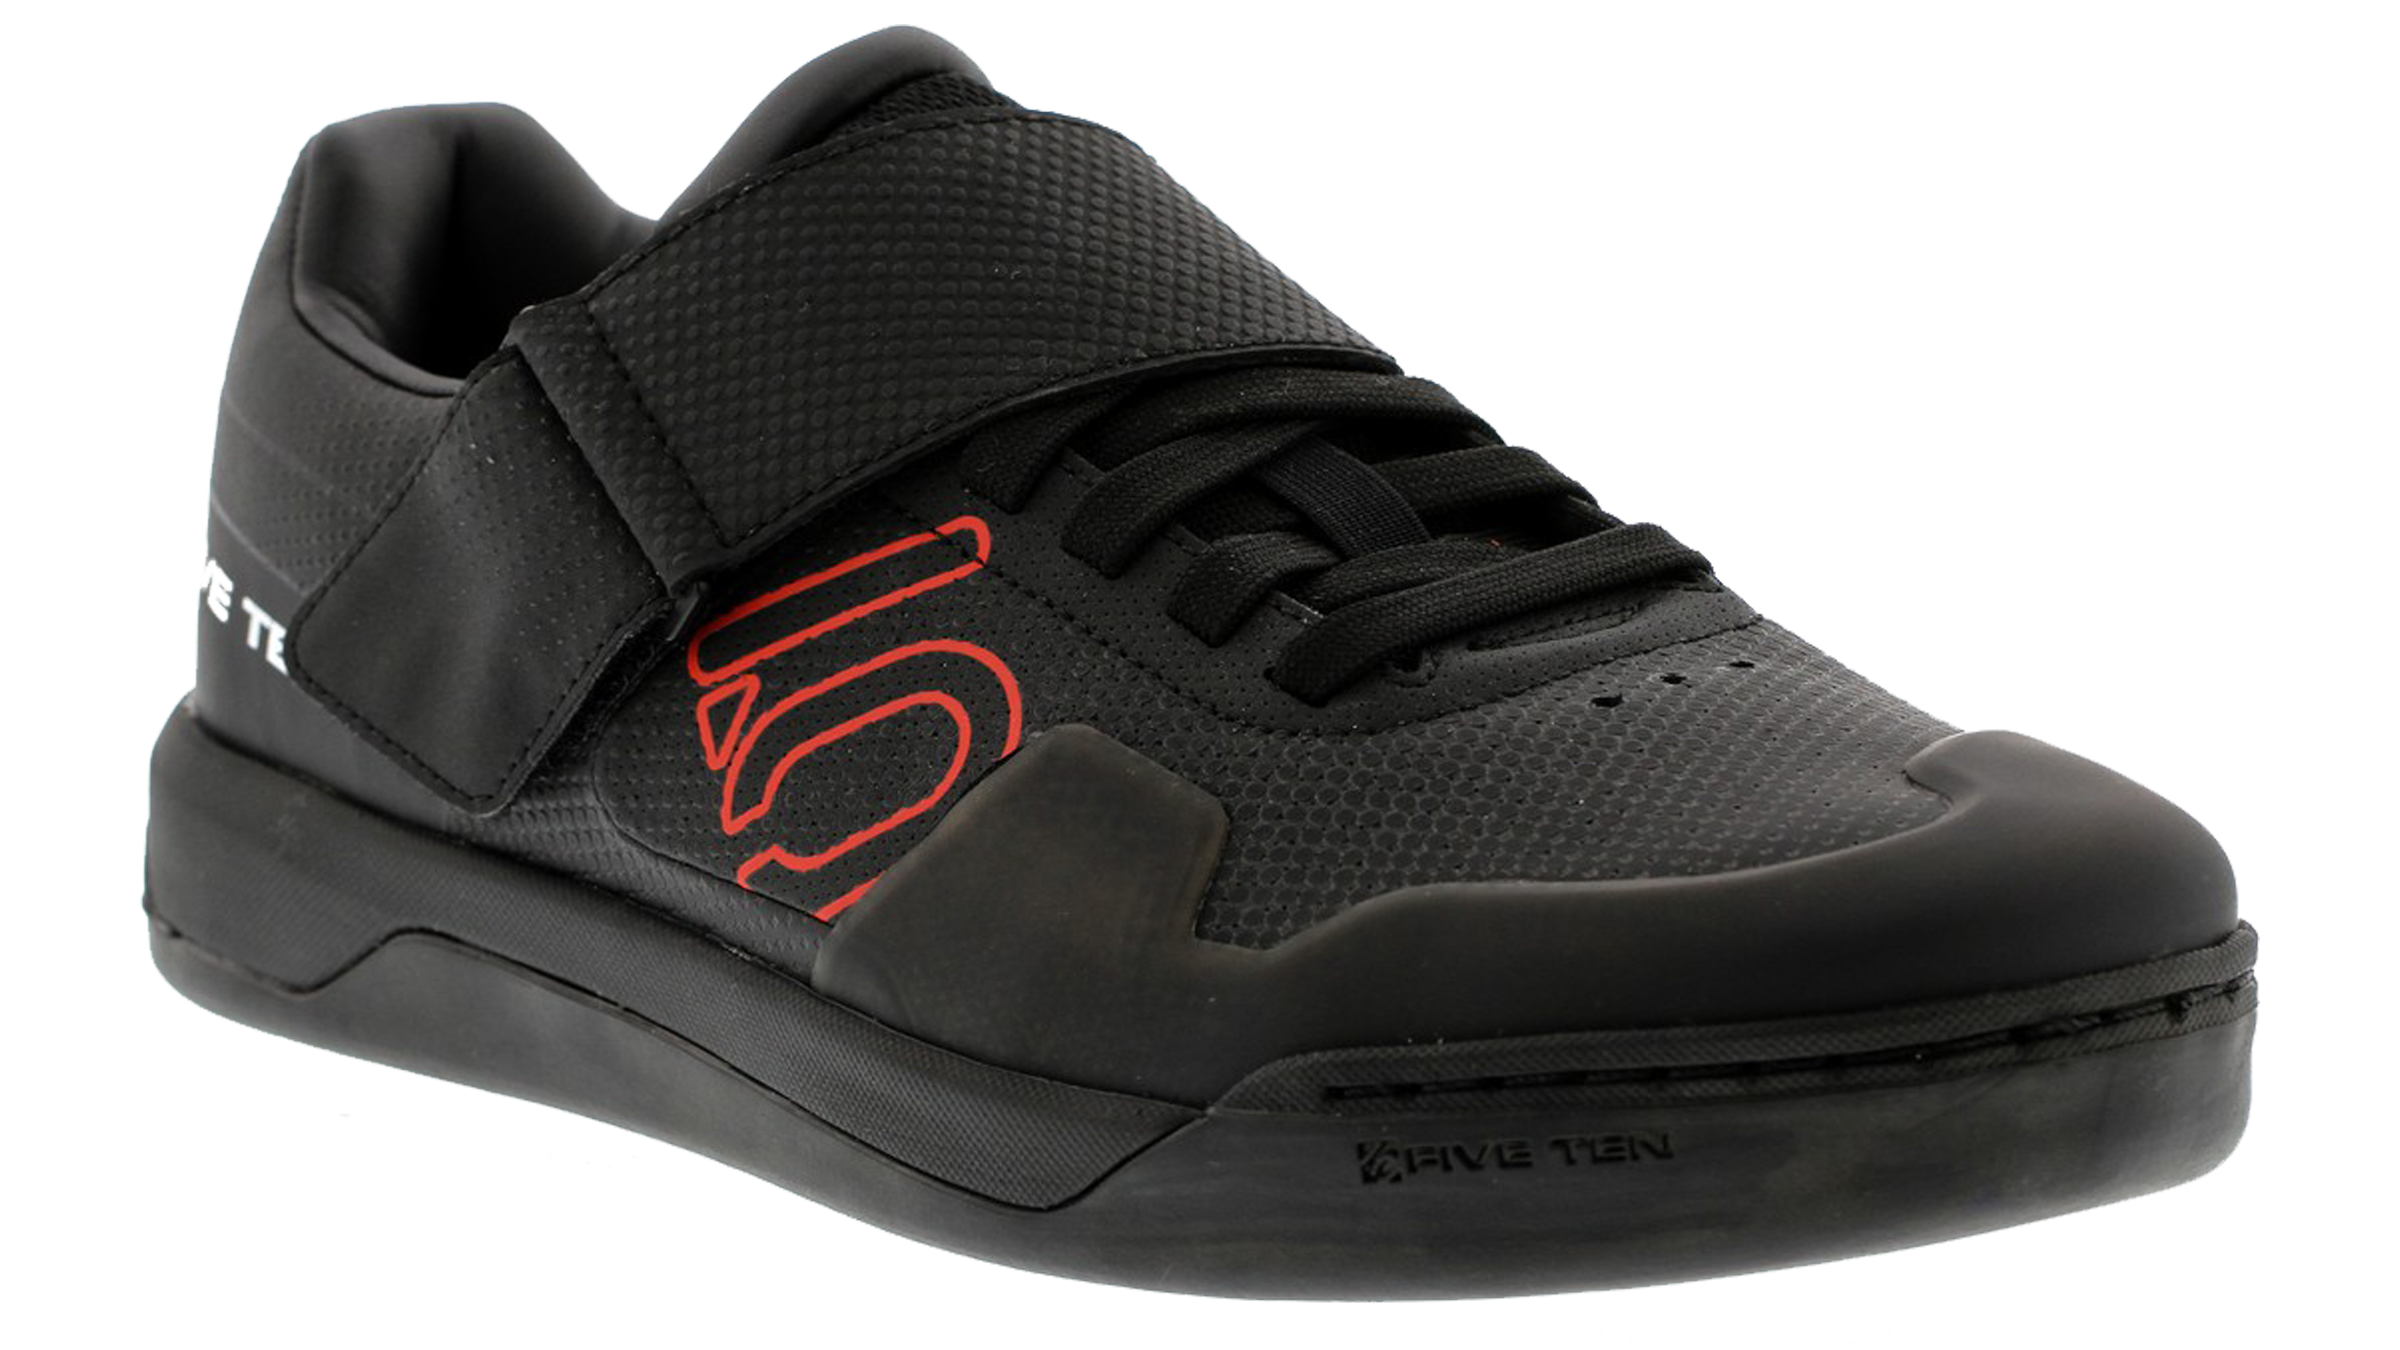 Five Ten Hellcat Pro Shoes | Shoes and overlays